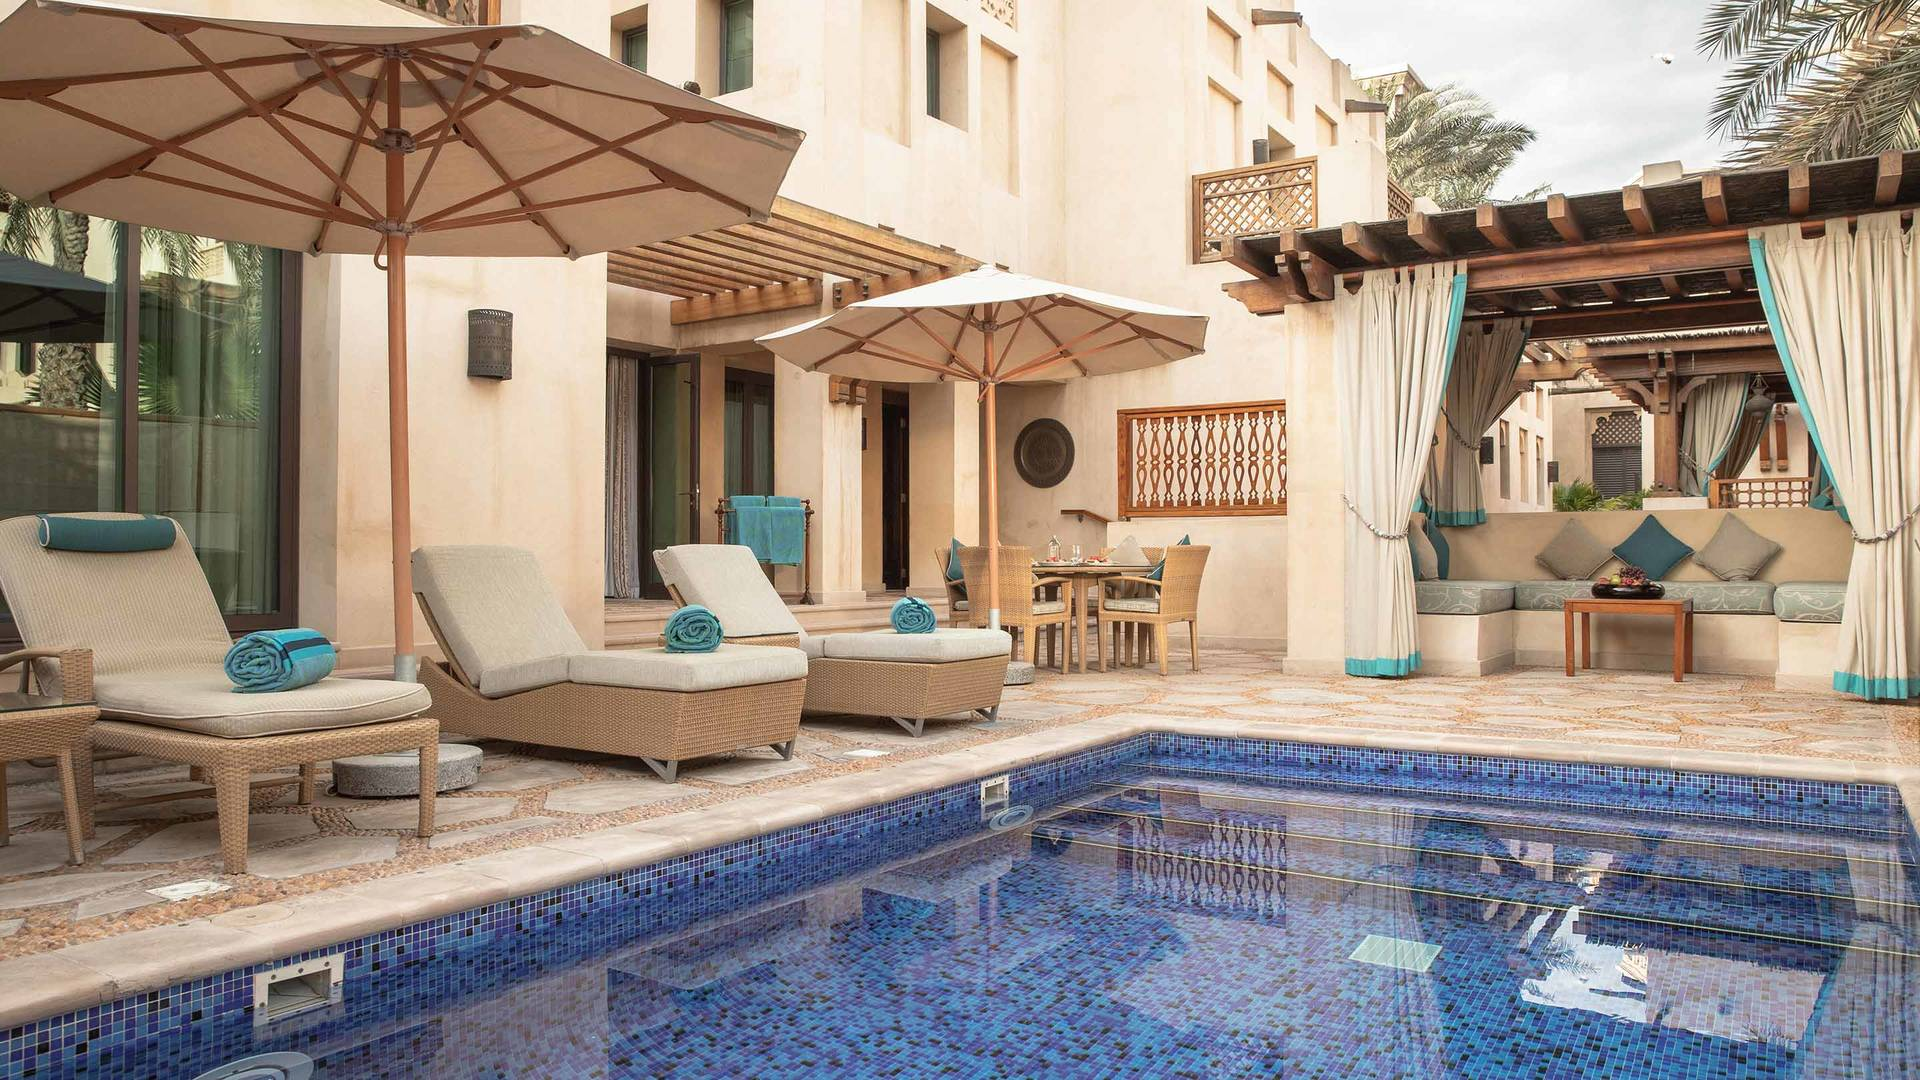 Jumeirah Dar Al Masayaf Two Bedroom Malakiya Villa pool and sun lounge area